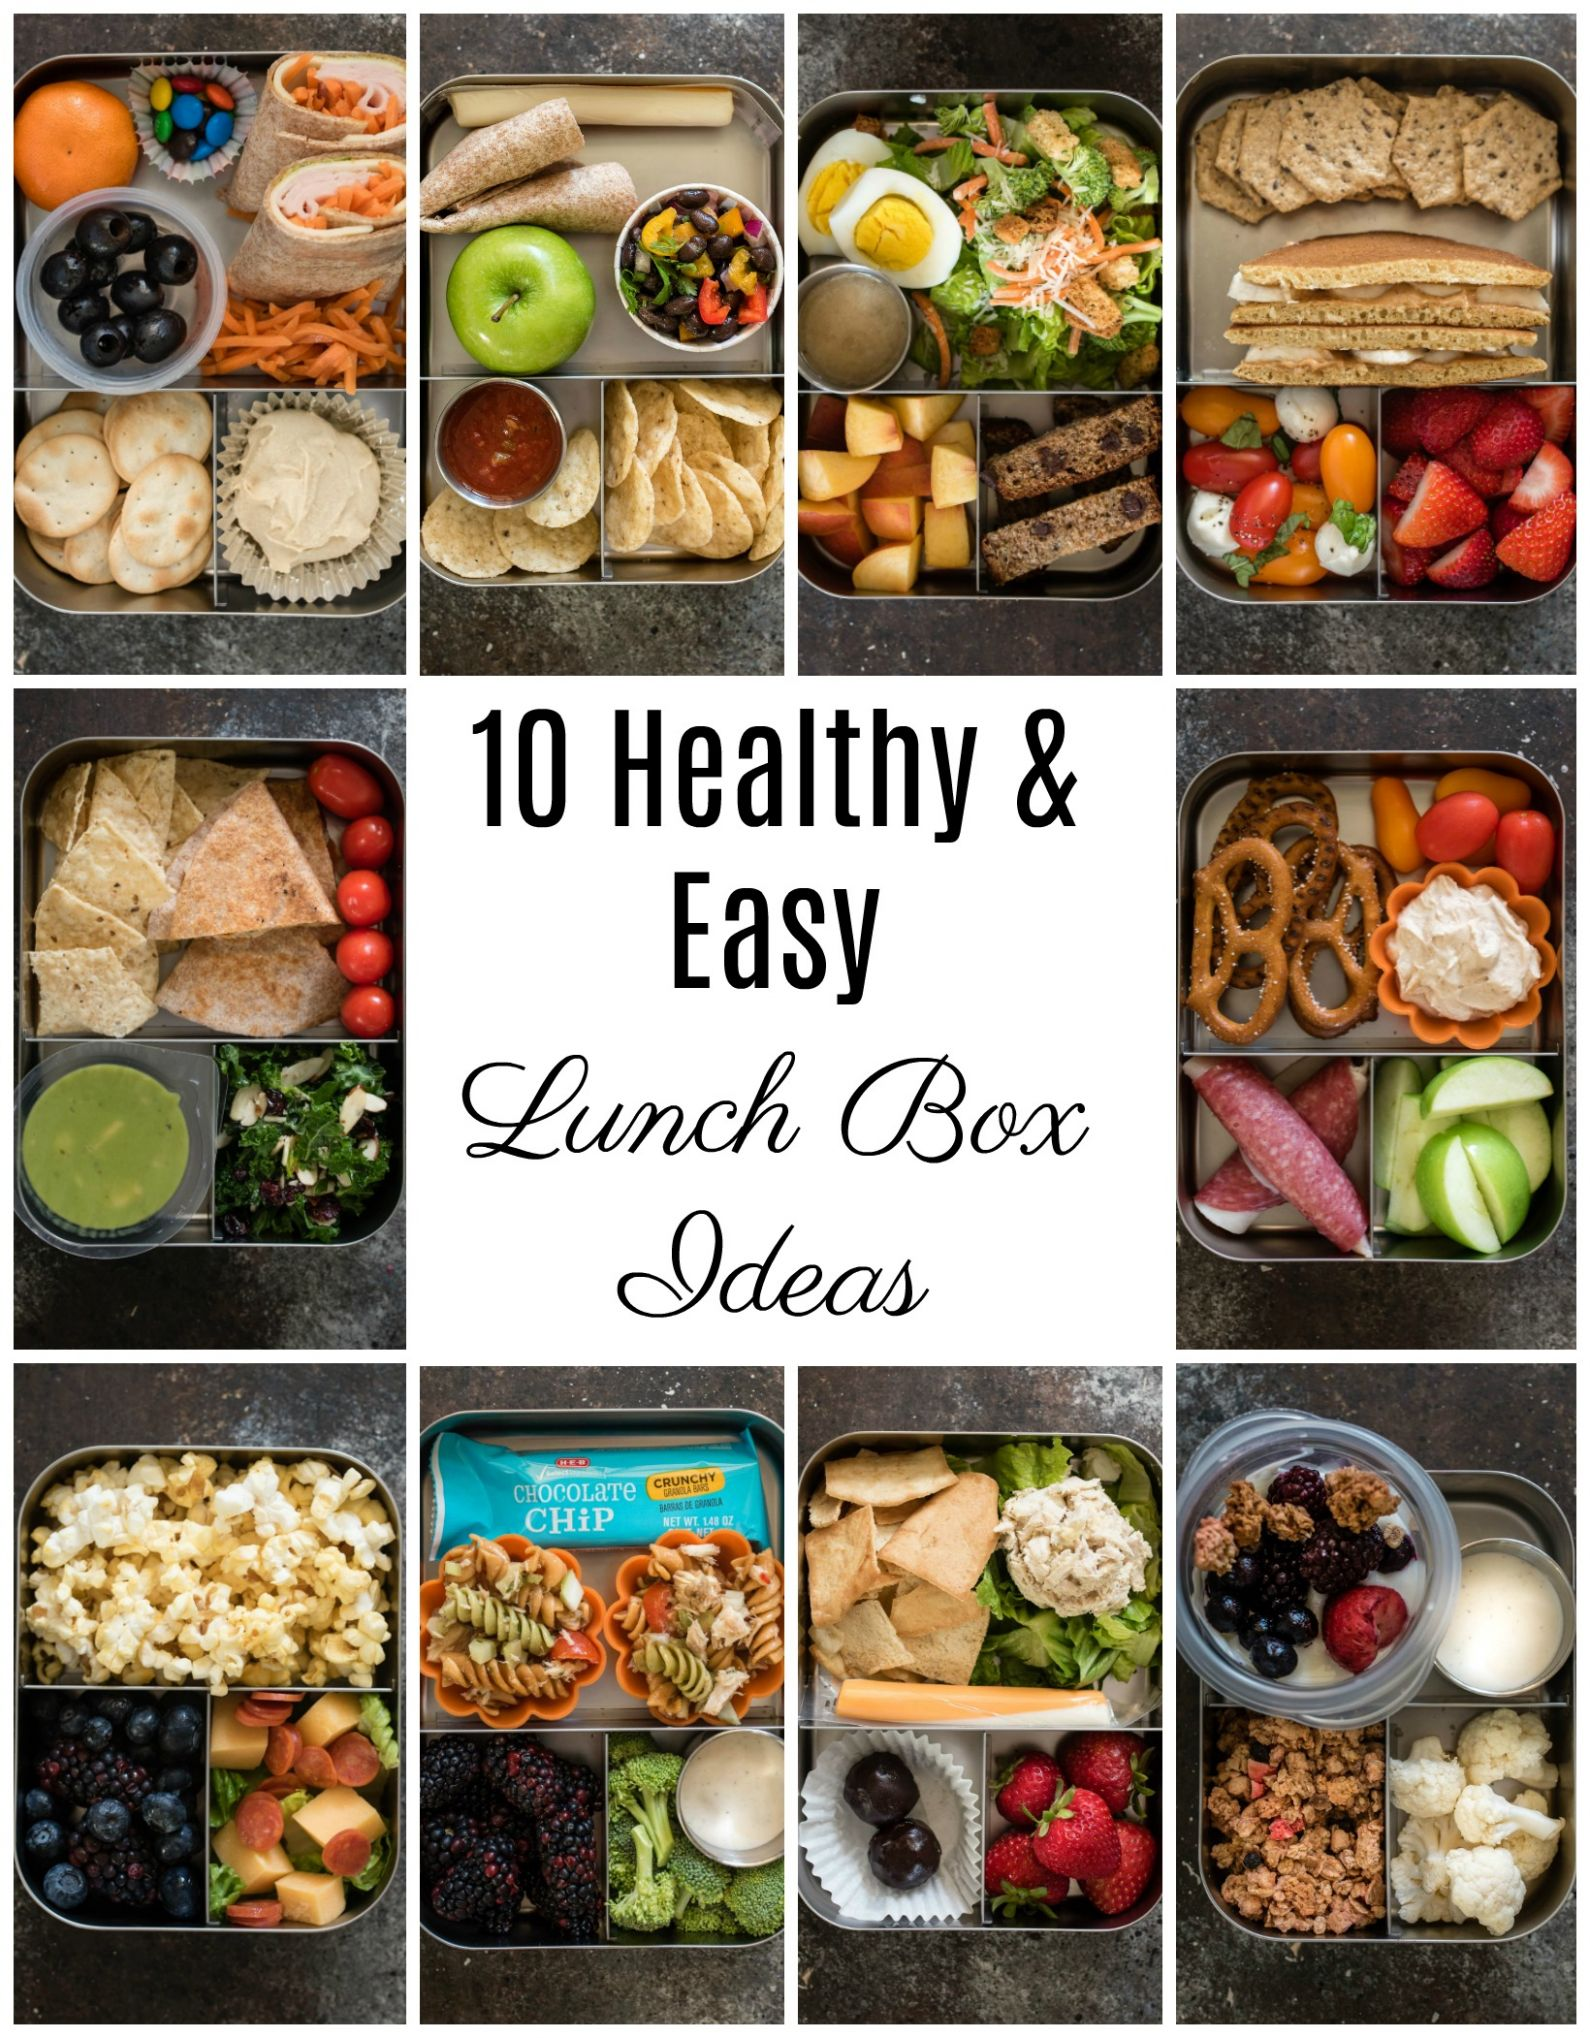 Pancake Sandwich and Healthy LunchBoxes - Simple Recipes Lunch Ideas